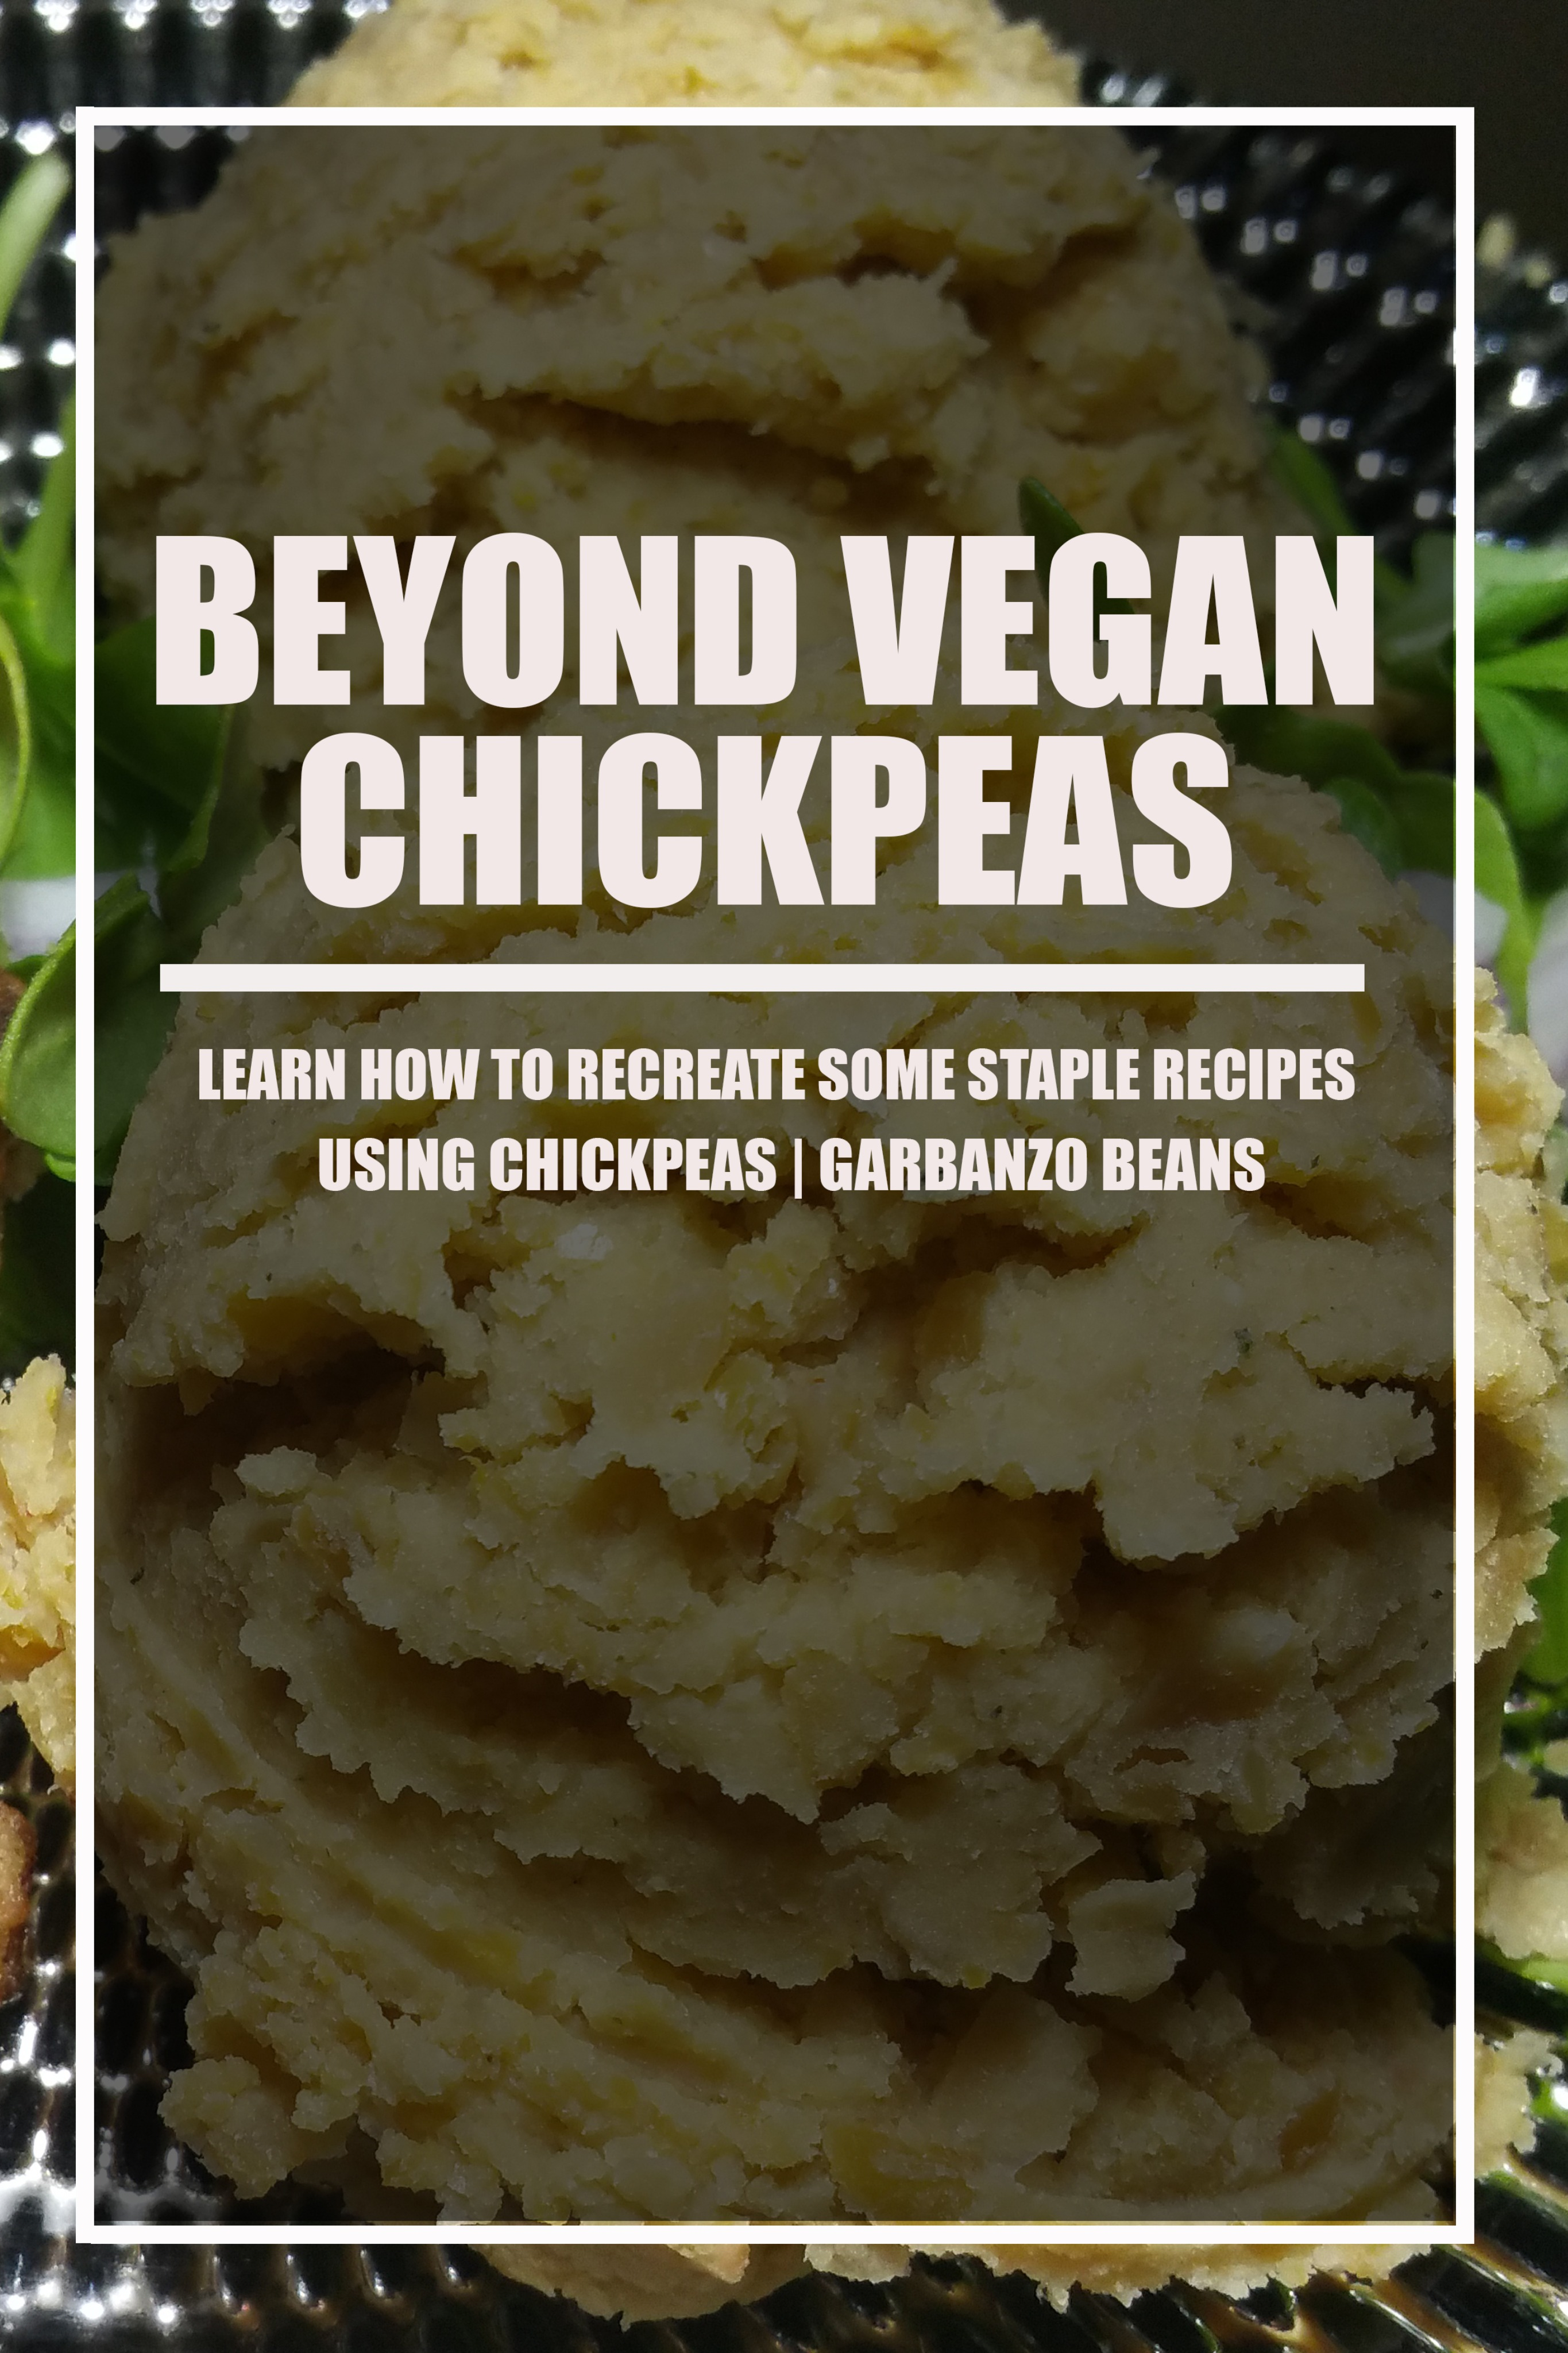 BEYOND VEGAN | CHICKPEAS COOKBOOK EBOOK